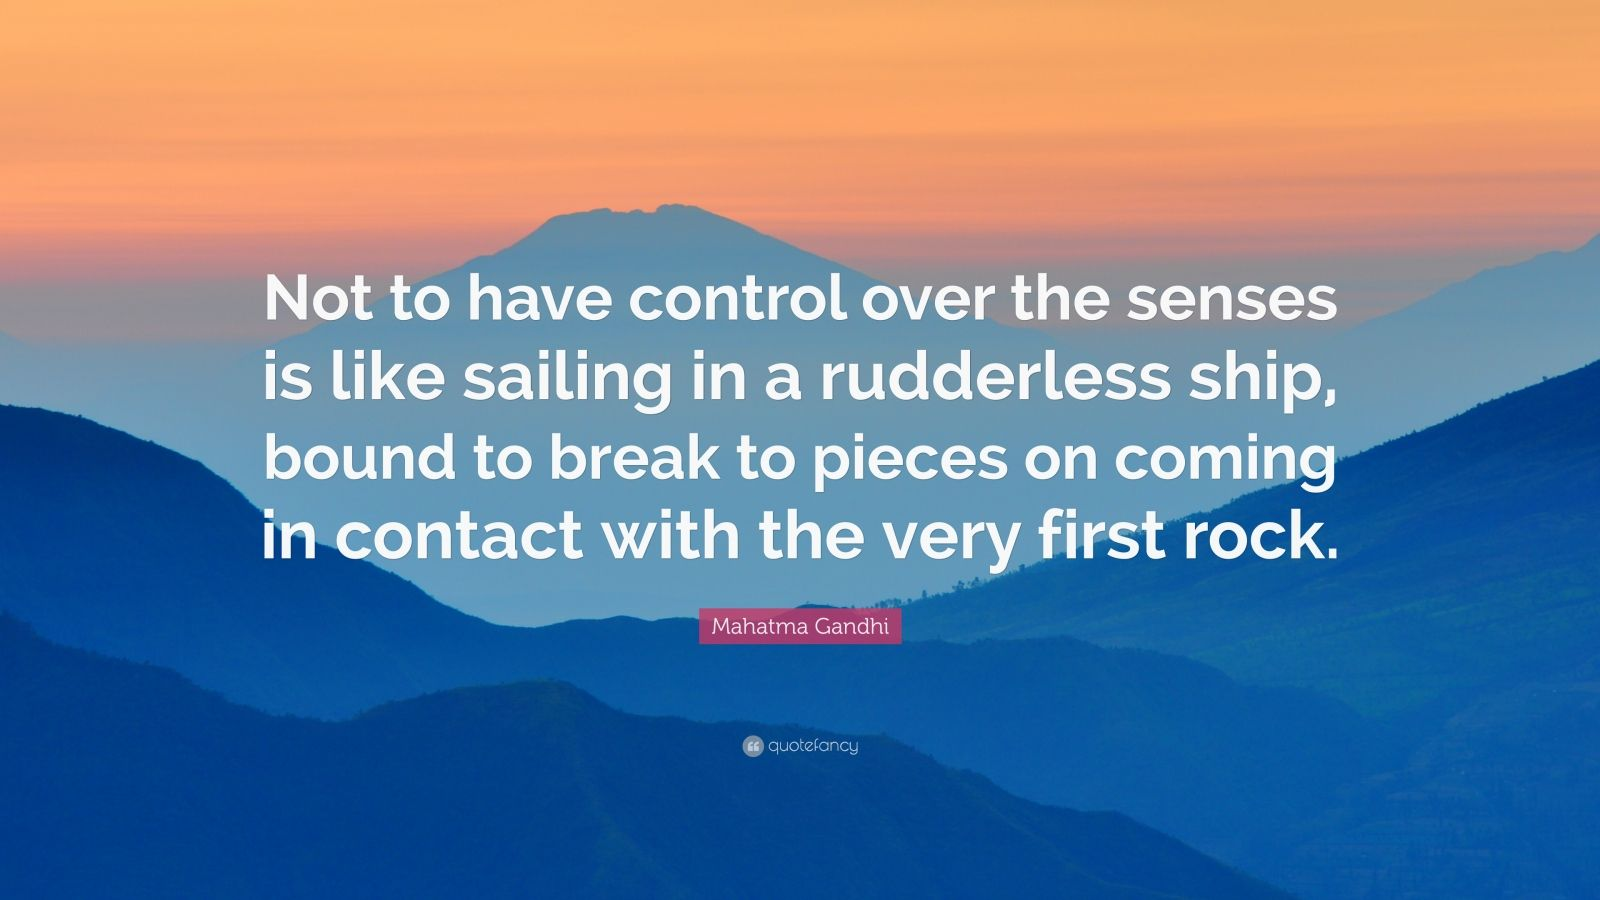 """Mahatma Gandhi Quote: """"Not to have control over the senses is like sailing in a rudderless ship, bound to break to pieces on coming in contact with the very first rock."""""""